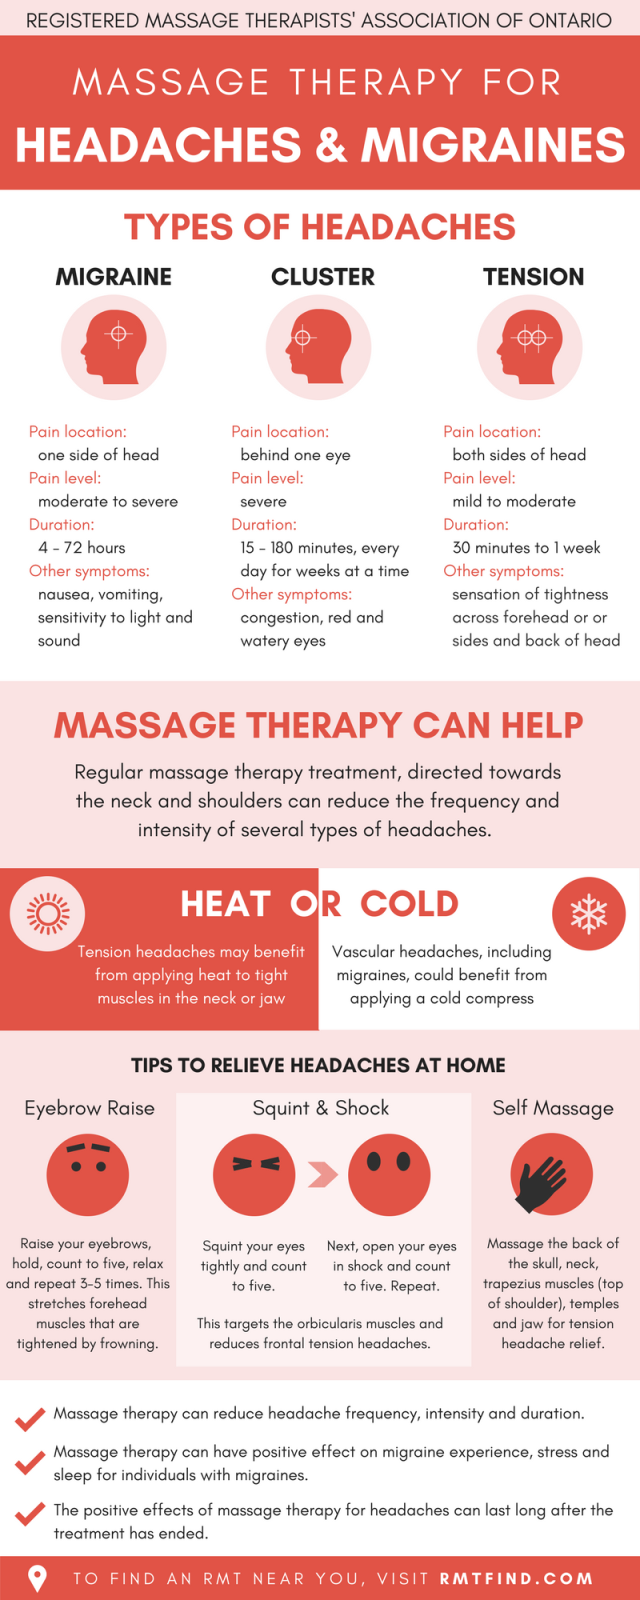 Massage therapy for headaches